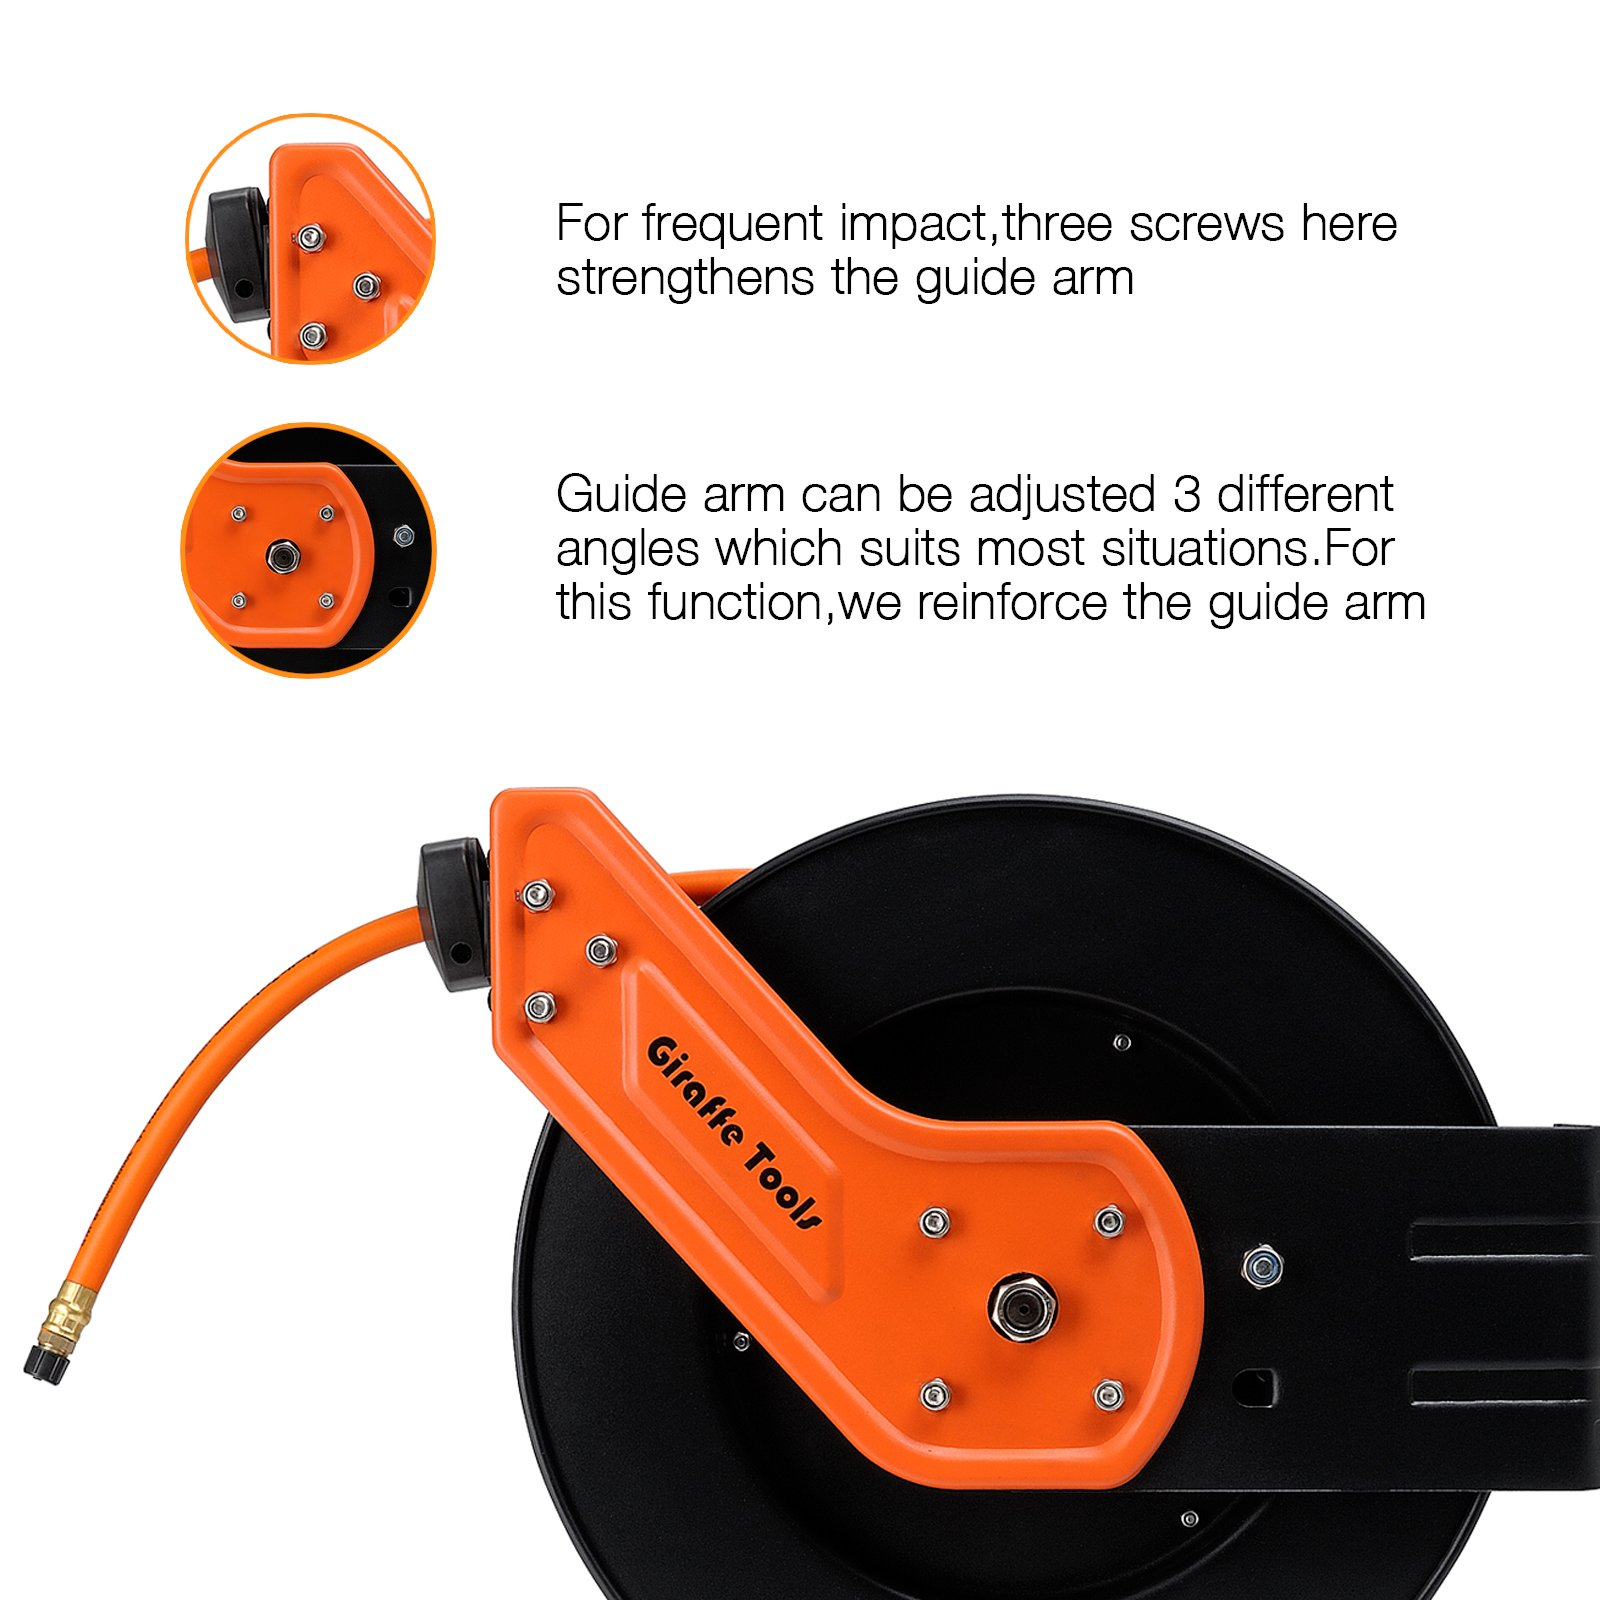 Giraffe Auto Retractable Air /Water Hose Reel with Free 3/8 In. x 50 Ft, 1/4 In. MNPT Hybrid Air Hose.Mountable, Swivel Bracket, 300 PSI and Heavy Duty by Giraffe Tools (Image #4)